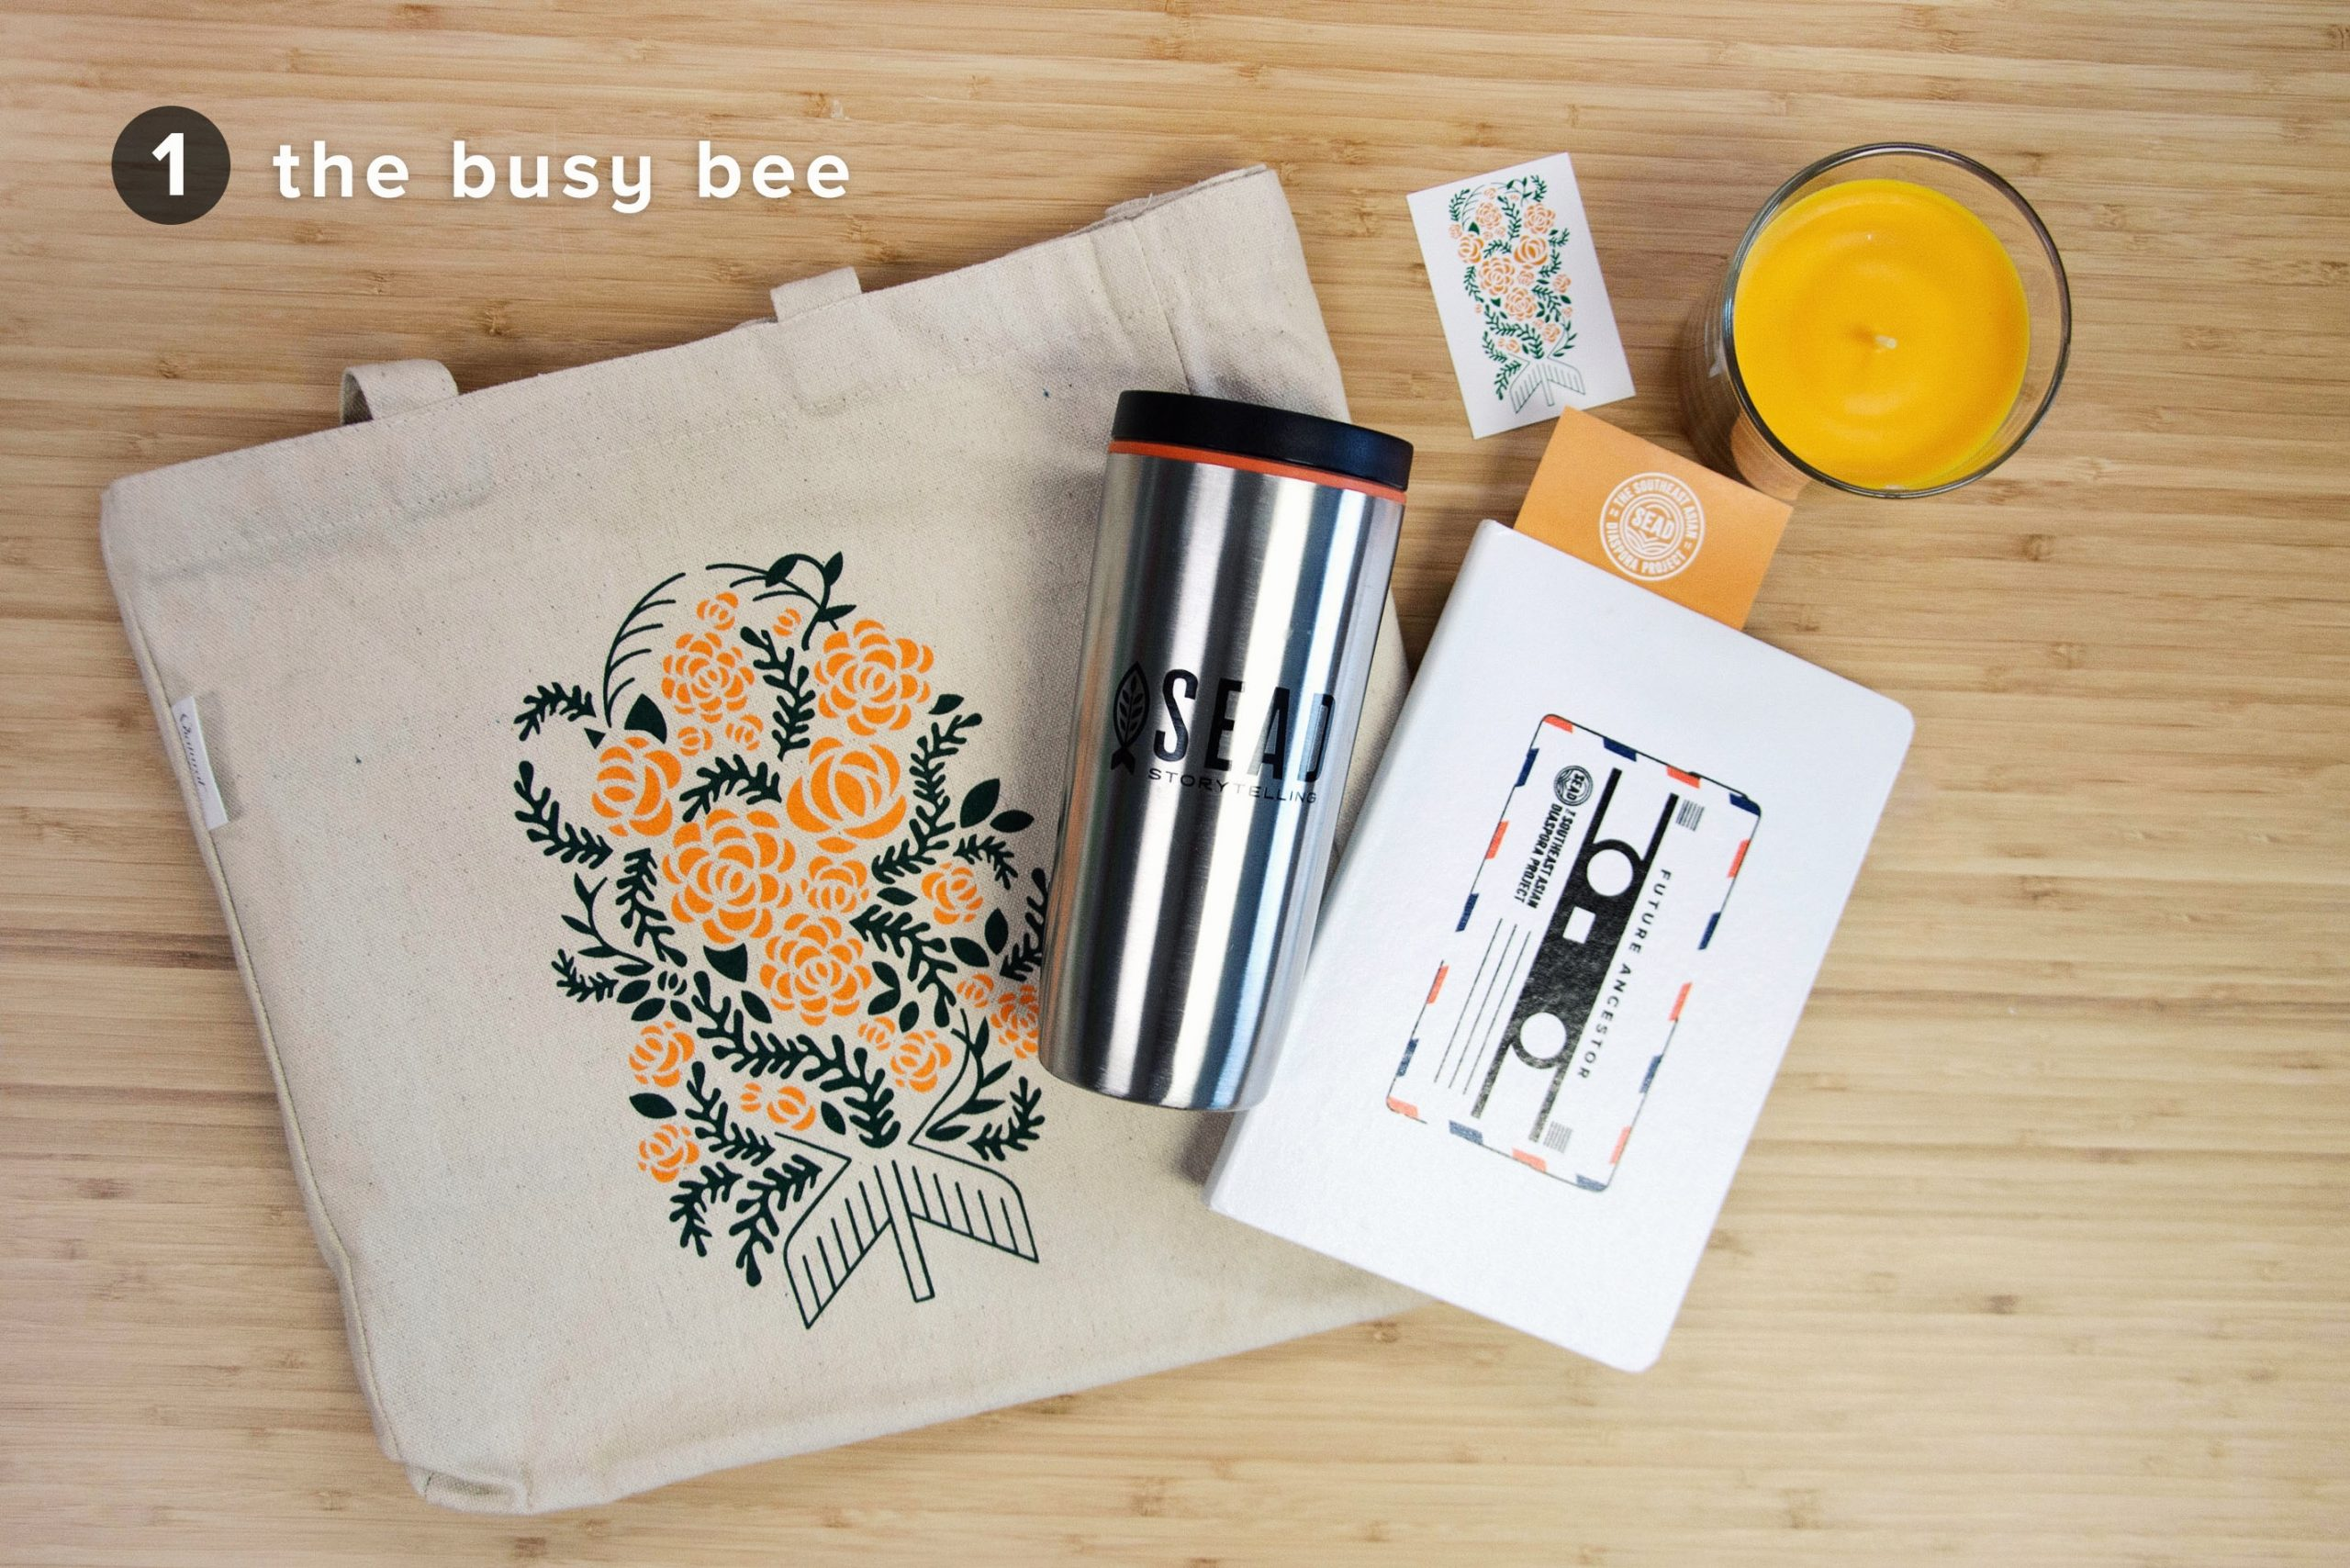 The Busy Bee: Flower Bomb tote bag, SEAD tumbler, Dear Village journal